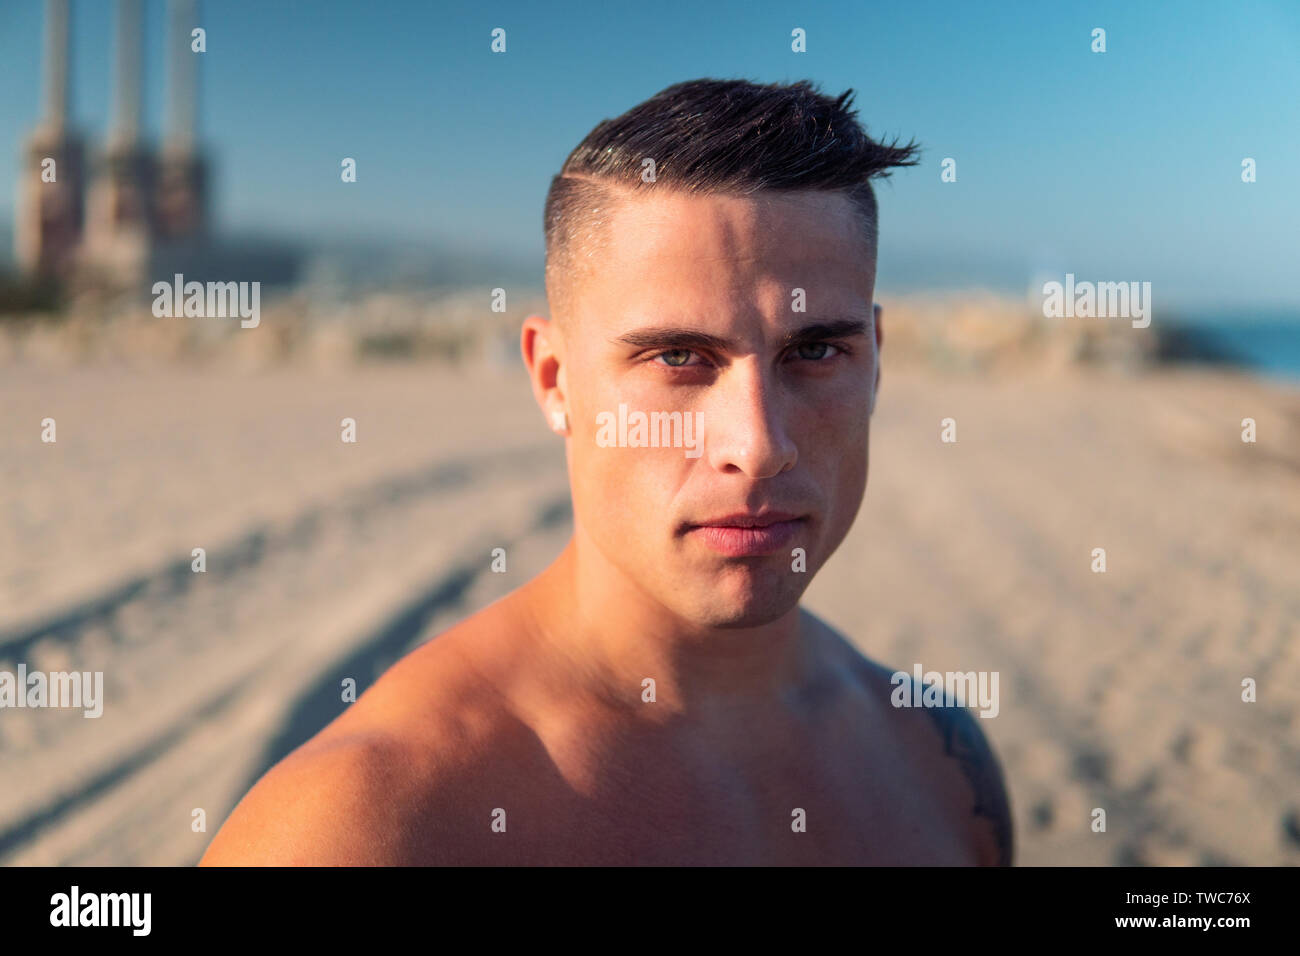 selfie portrait of bodybuilder sexy male coach at the beach Stock Photo